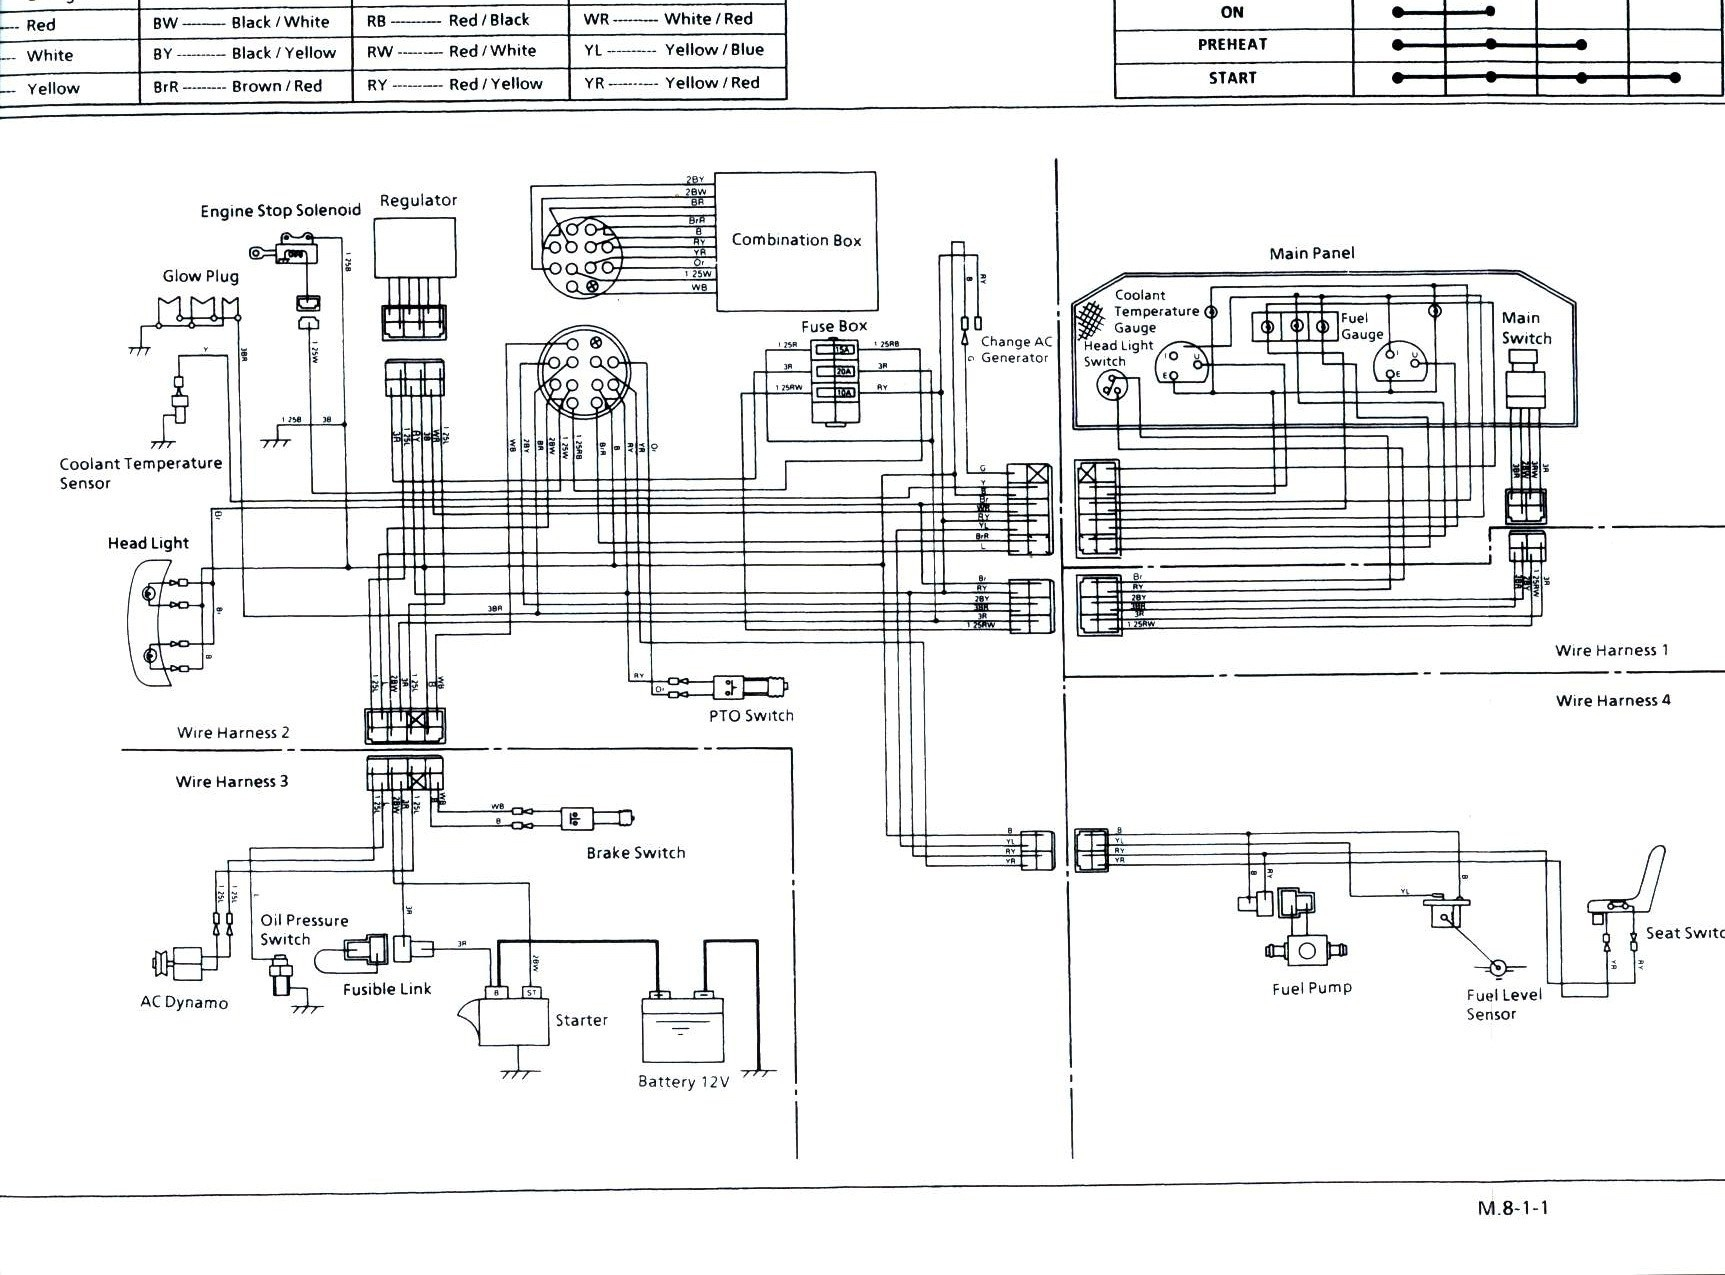 kubota wiring diagram pdf Download-Kubota Ignition Switch Wiring Diagram New Kubota Generator Wiring Diagram Inspirationa Kubota Wiring Diagram 3-b